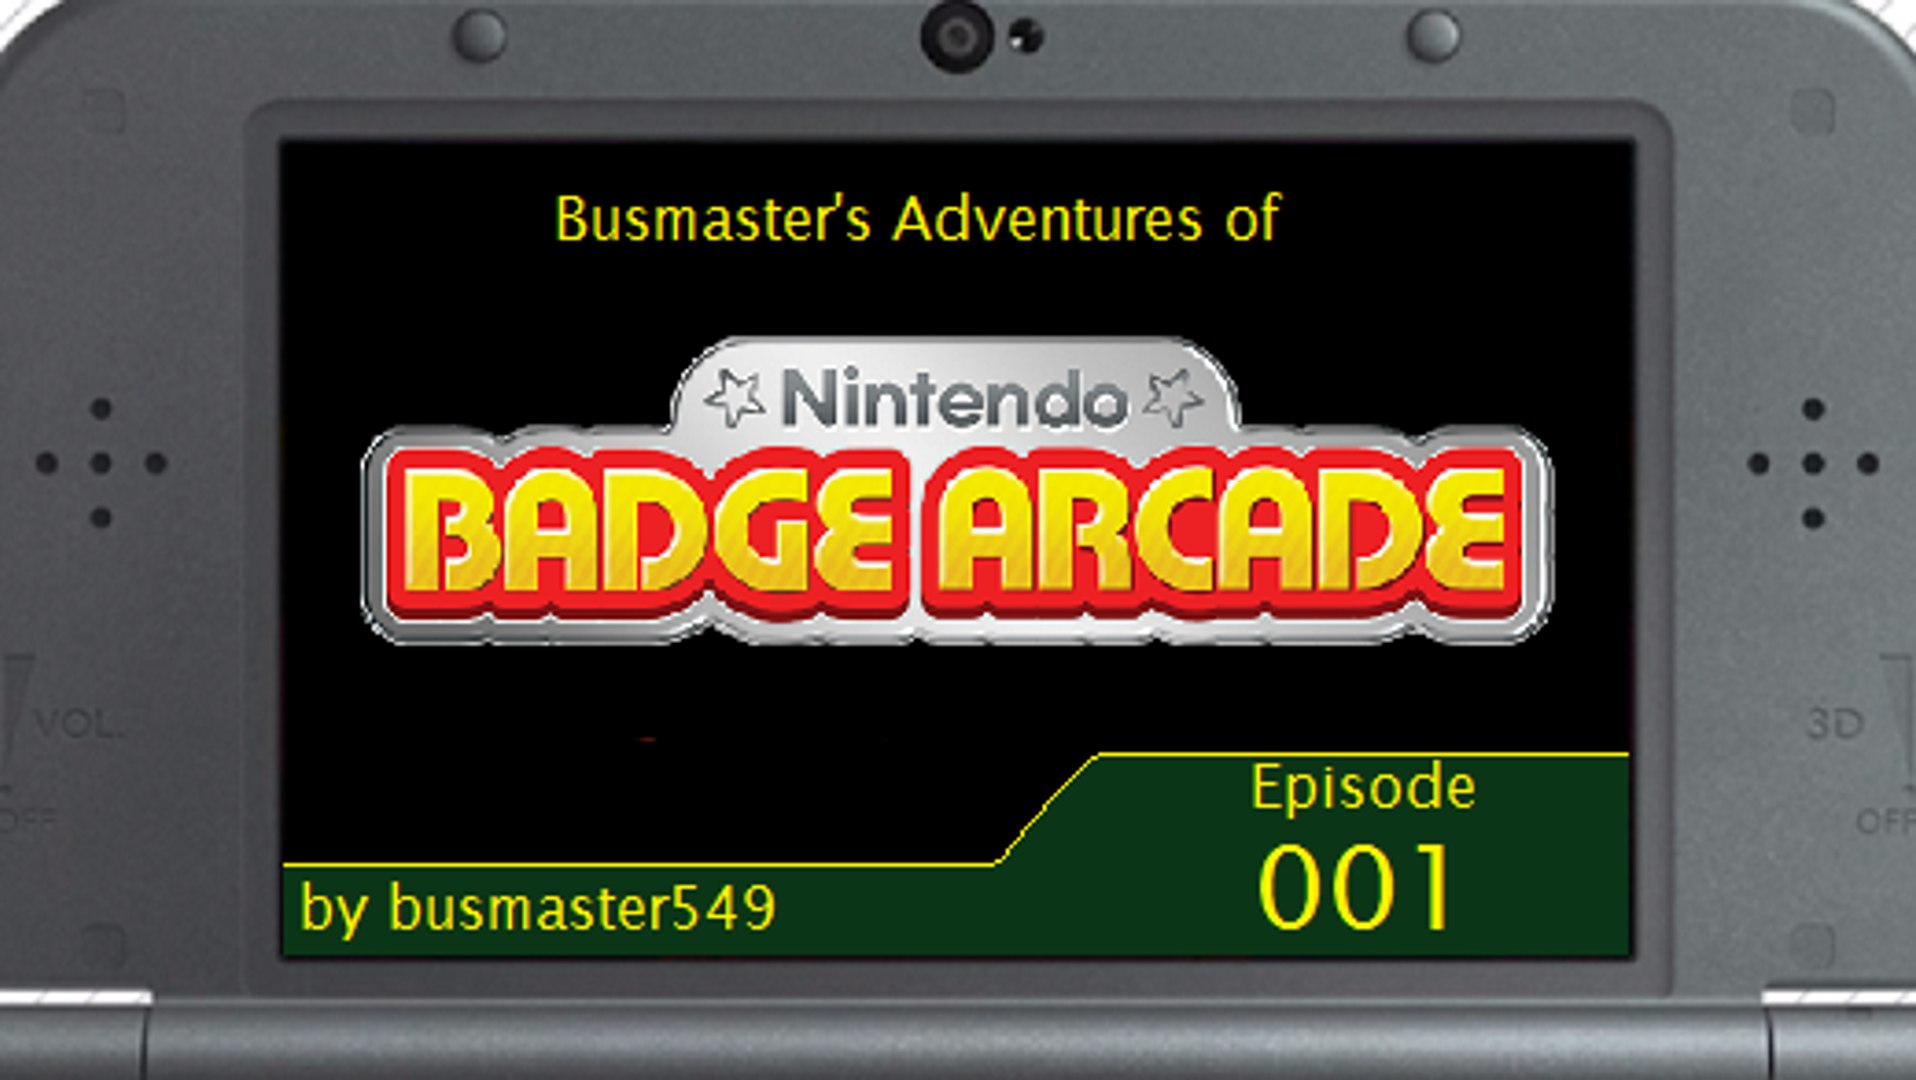 They comin up with new 2016 crap! (NINTENDO BADGE ARCADE) (MADNESS!)